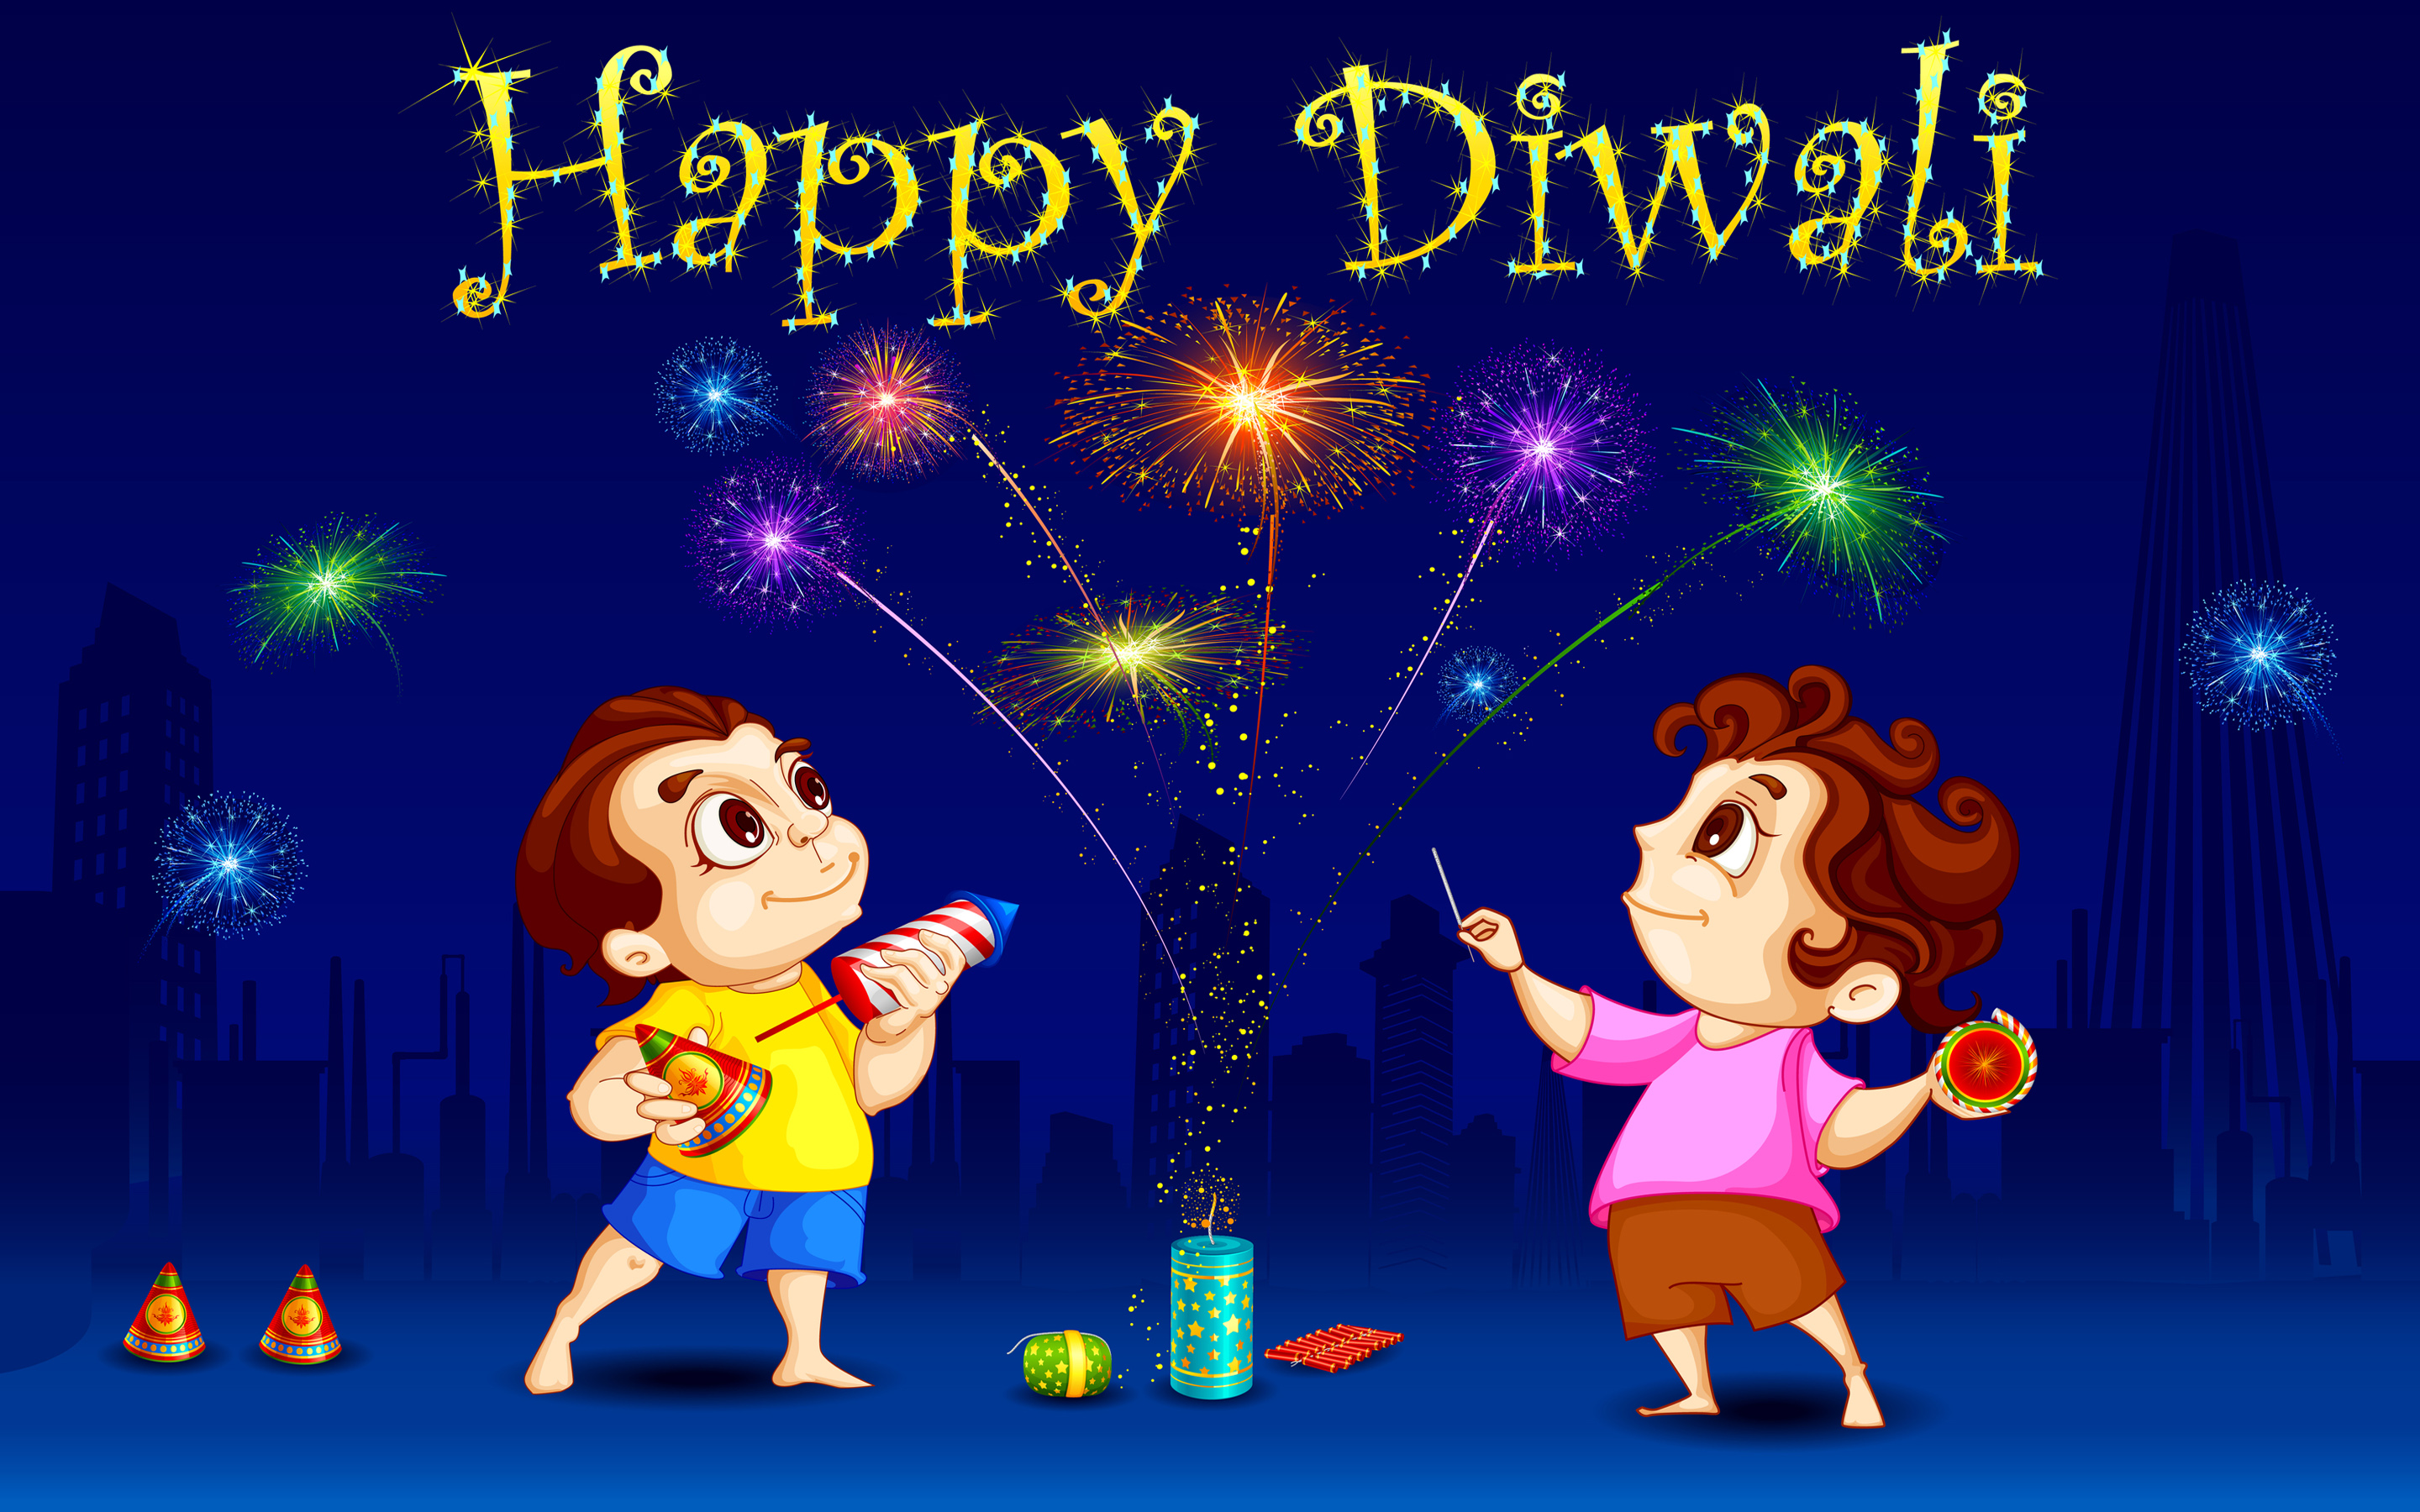 online diwali shopping elitehandicrafts com